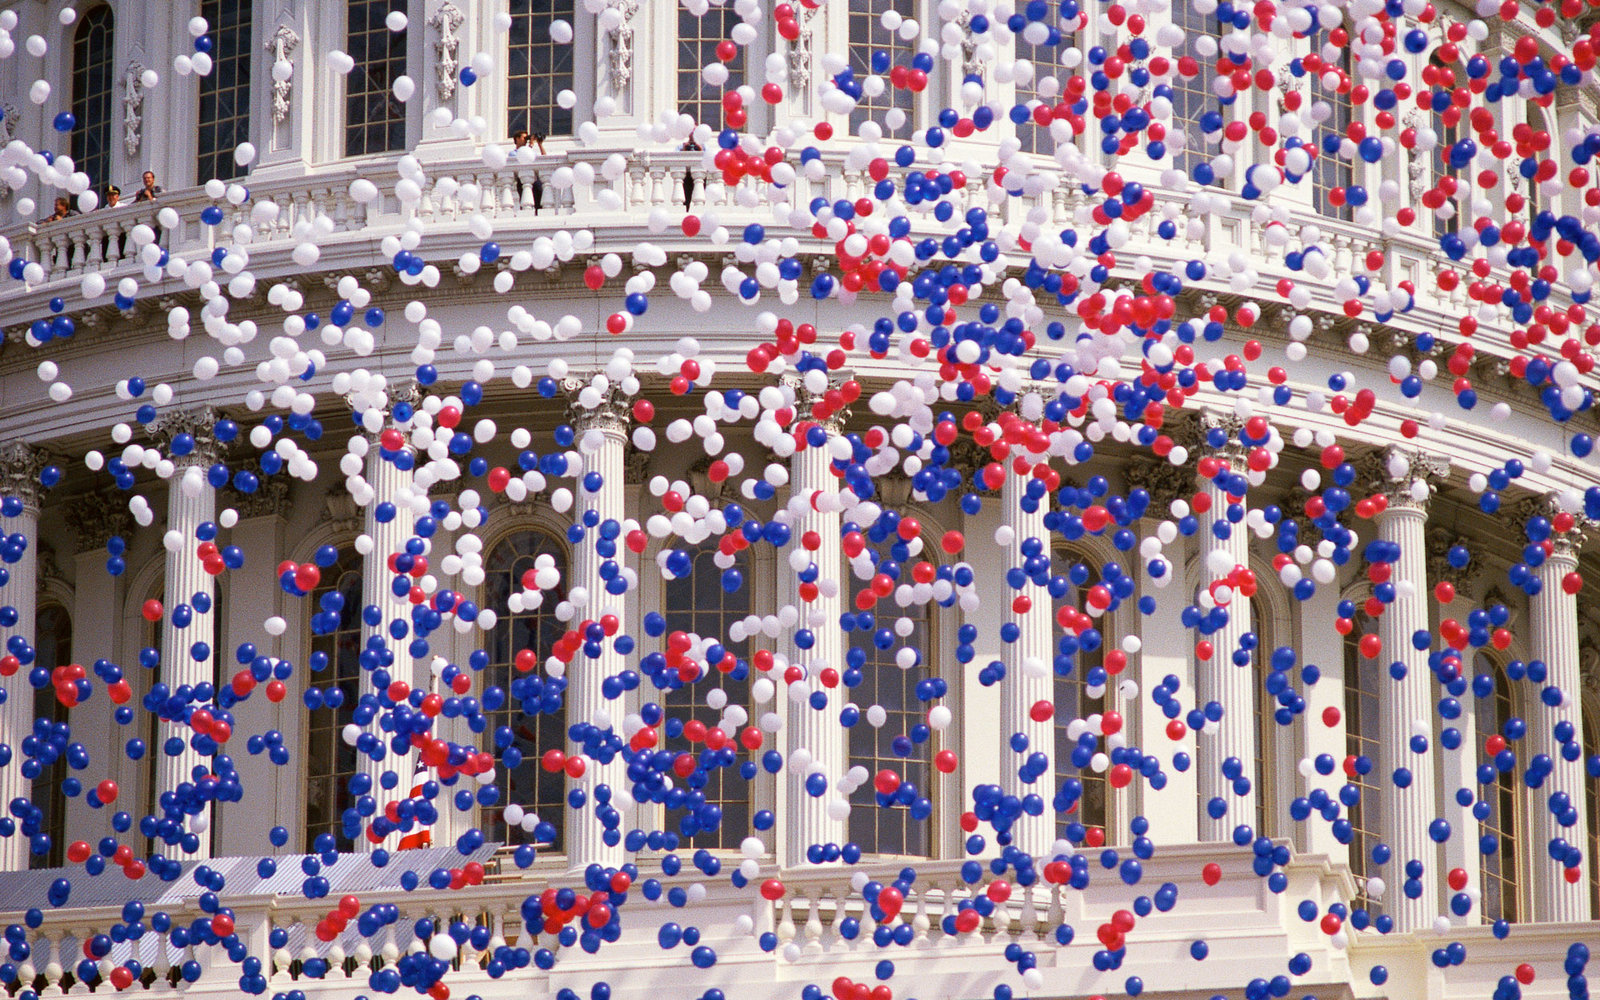 Capitol Building with red, white, and blue balloons